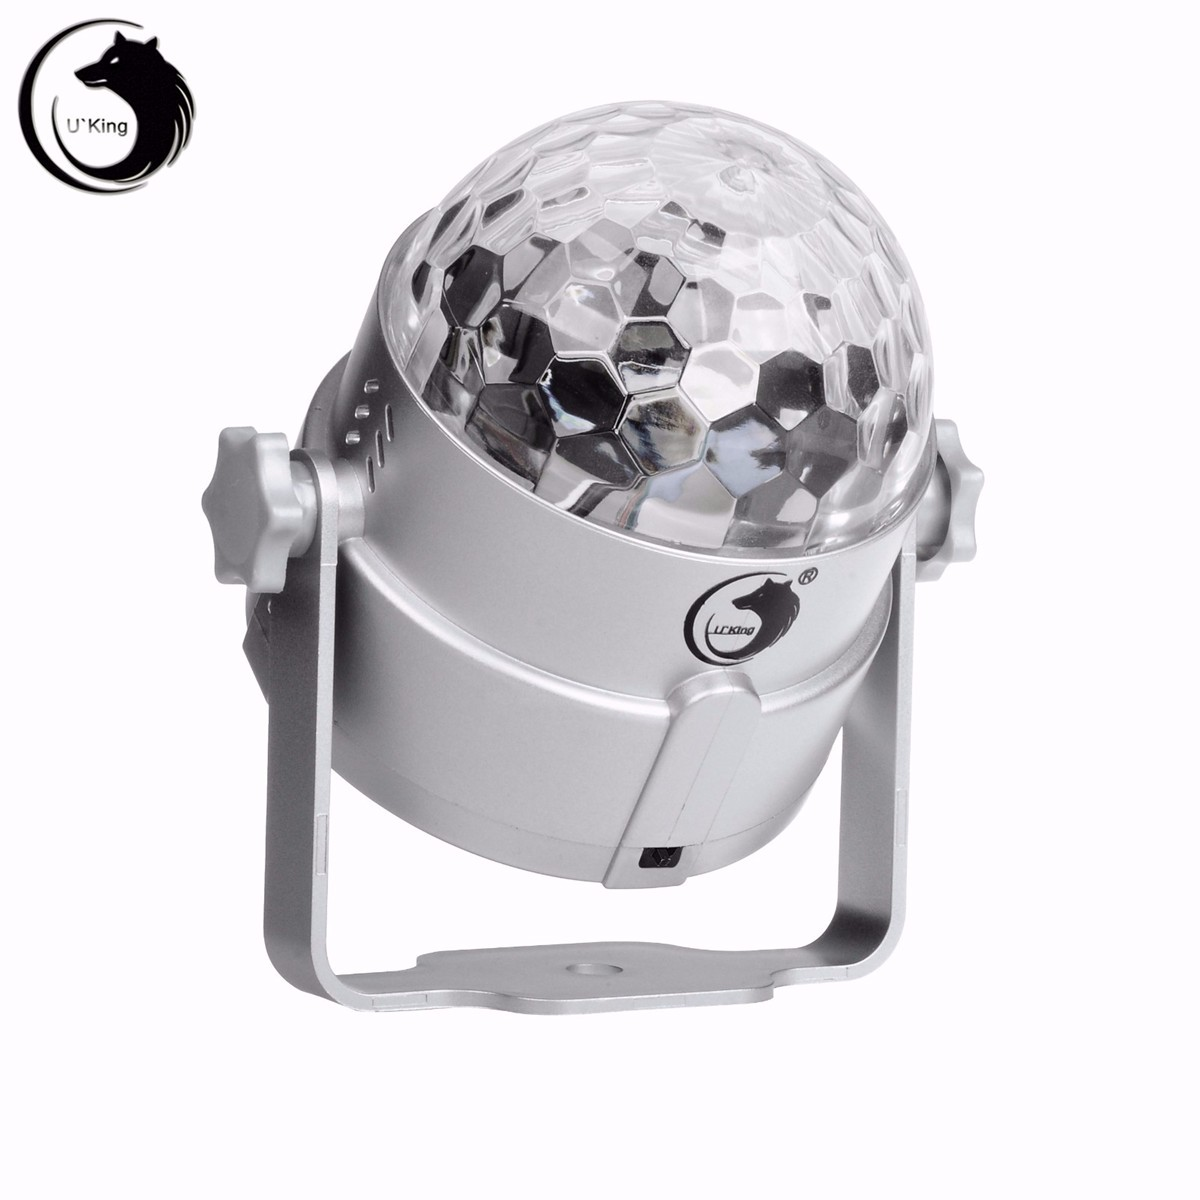 Voice Control Auto 3 Color LED Magic Stage Light Crystal Ball Night Lamp Hanging Club Pub Bar Disco Wedding Party Show Lighting mipow btl300 creative led light bluetooth aromatherapy flameless candle voice control lamp holiday party decoration gift